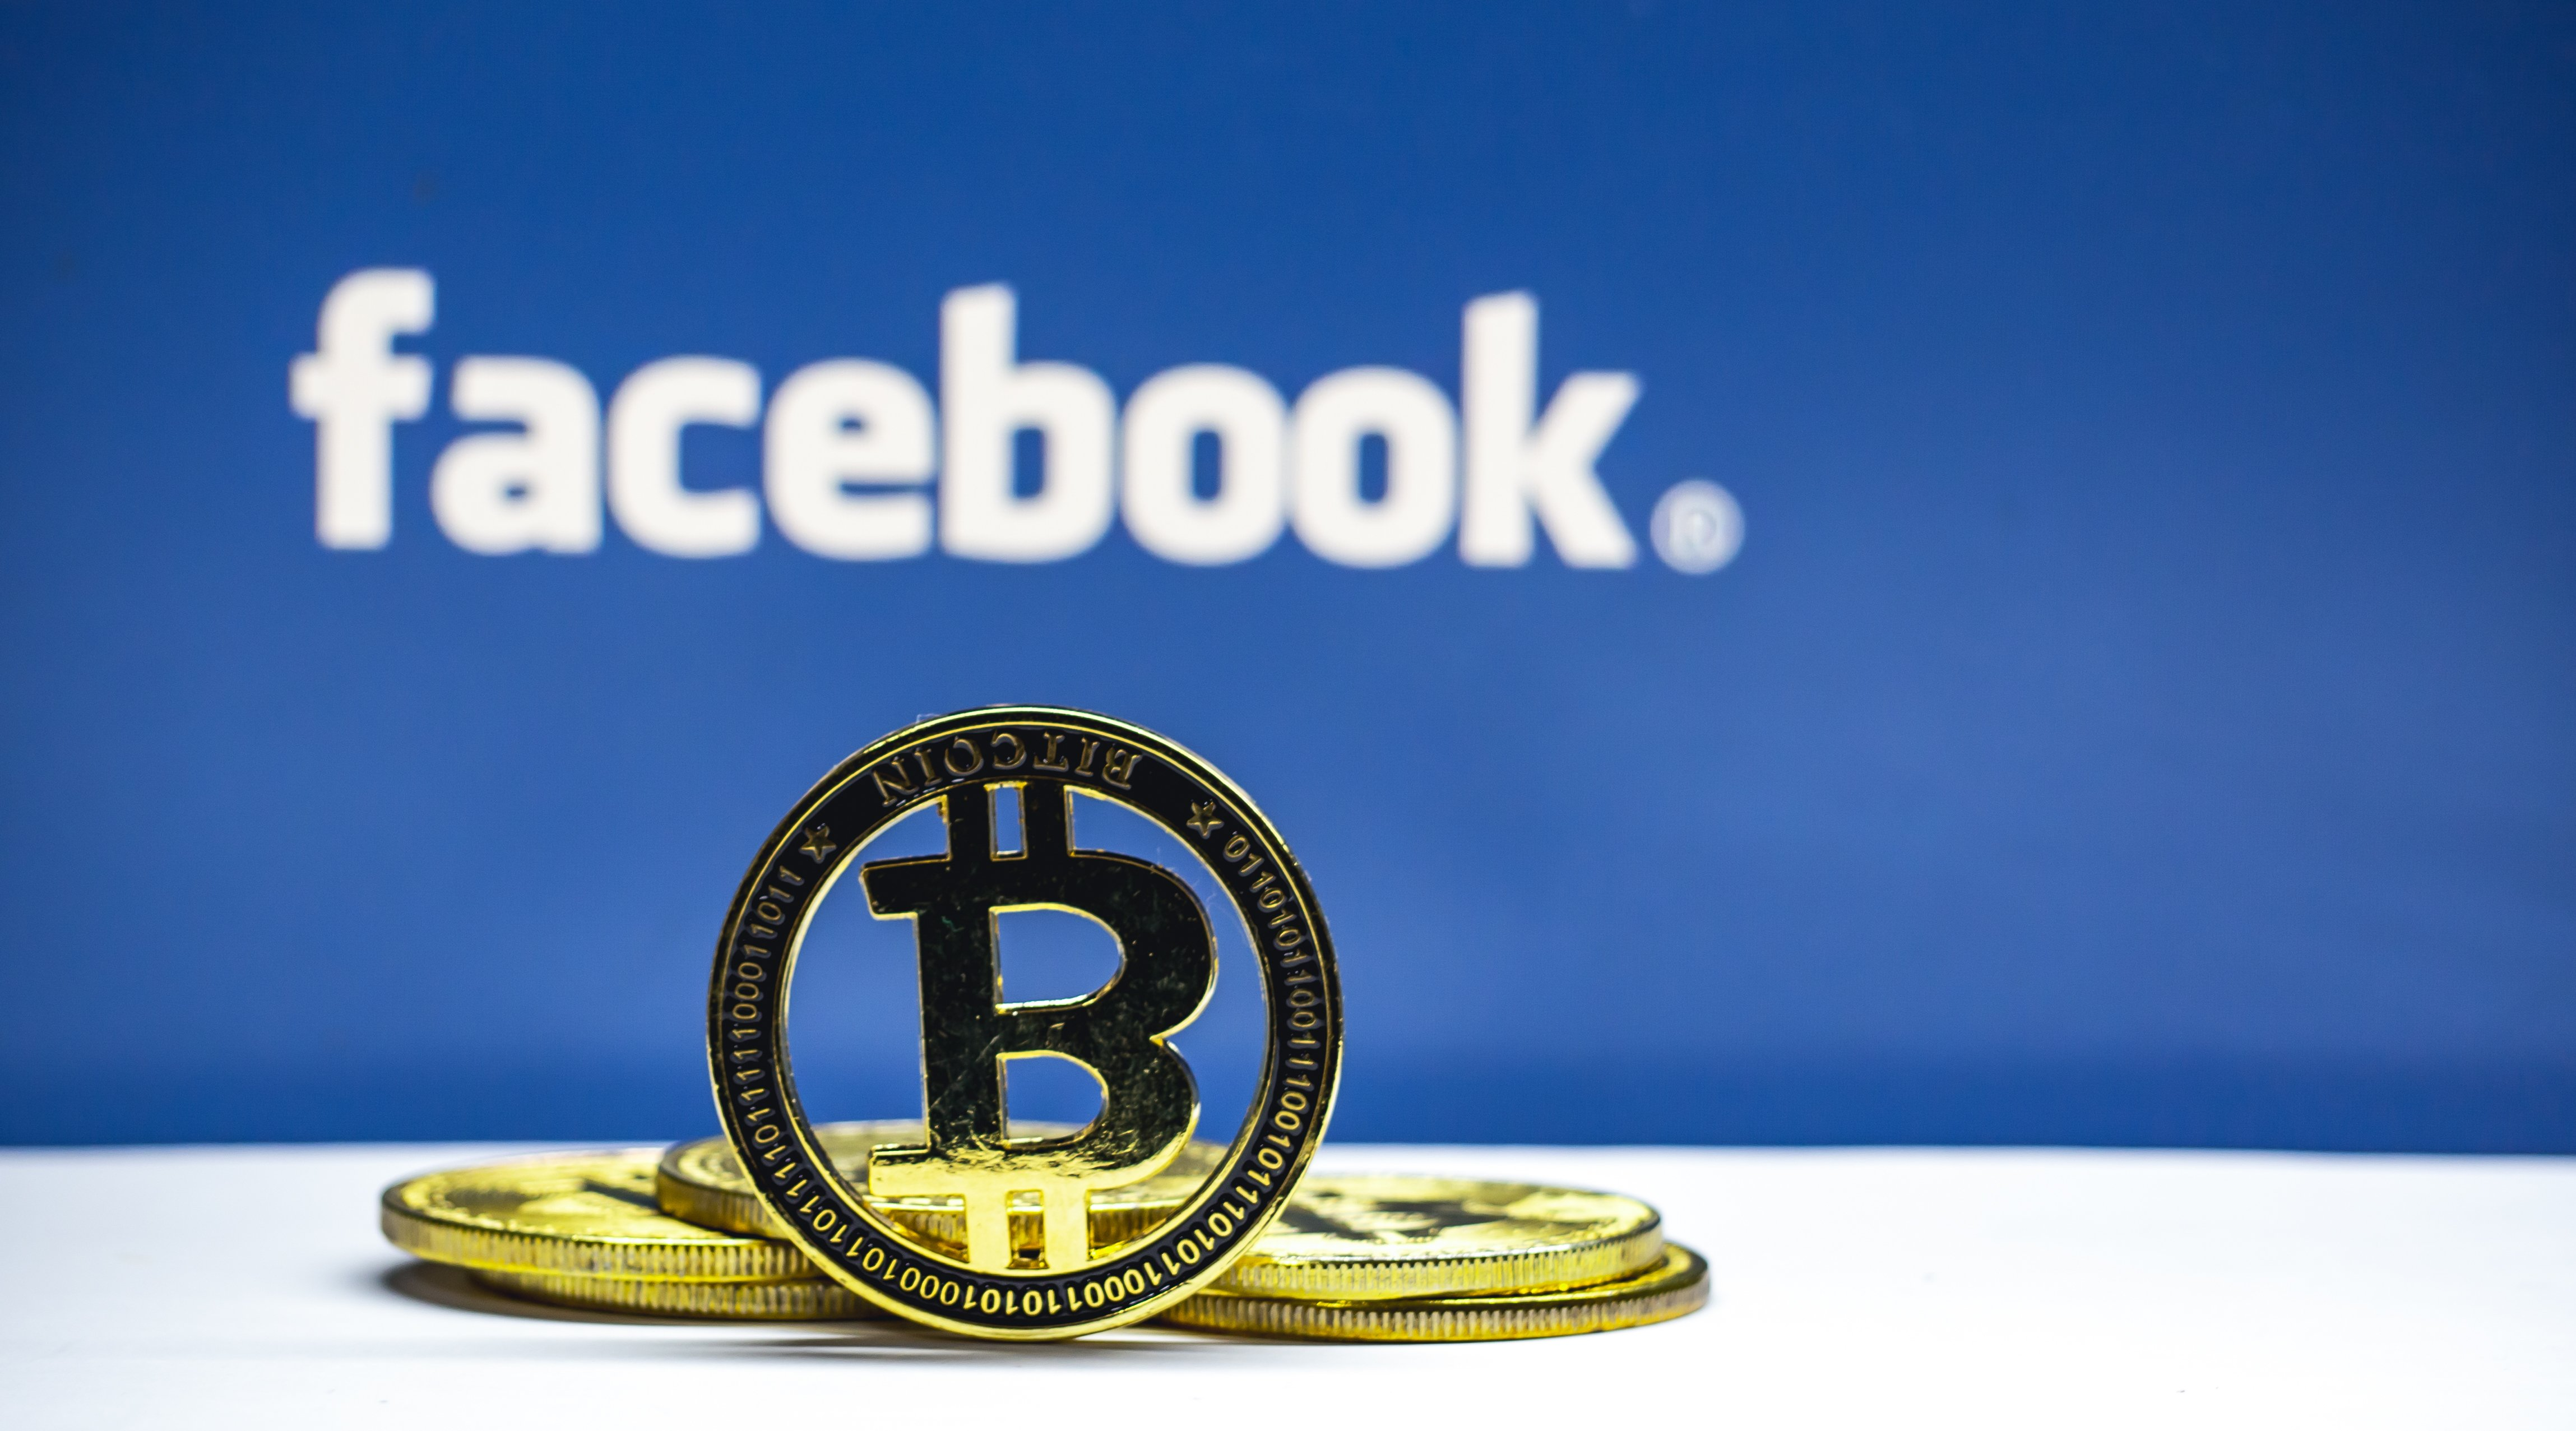 Facebook Wants Federal Approval to Start its Own Currency.